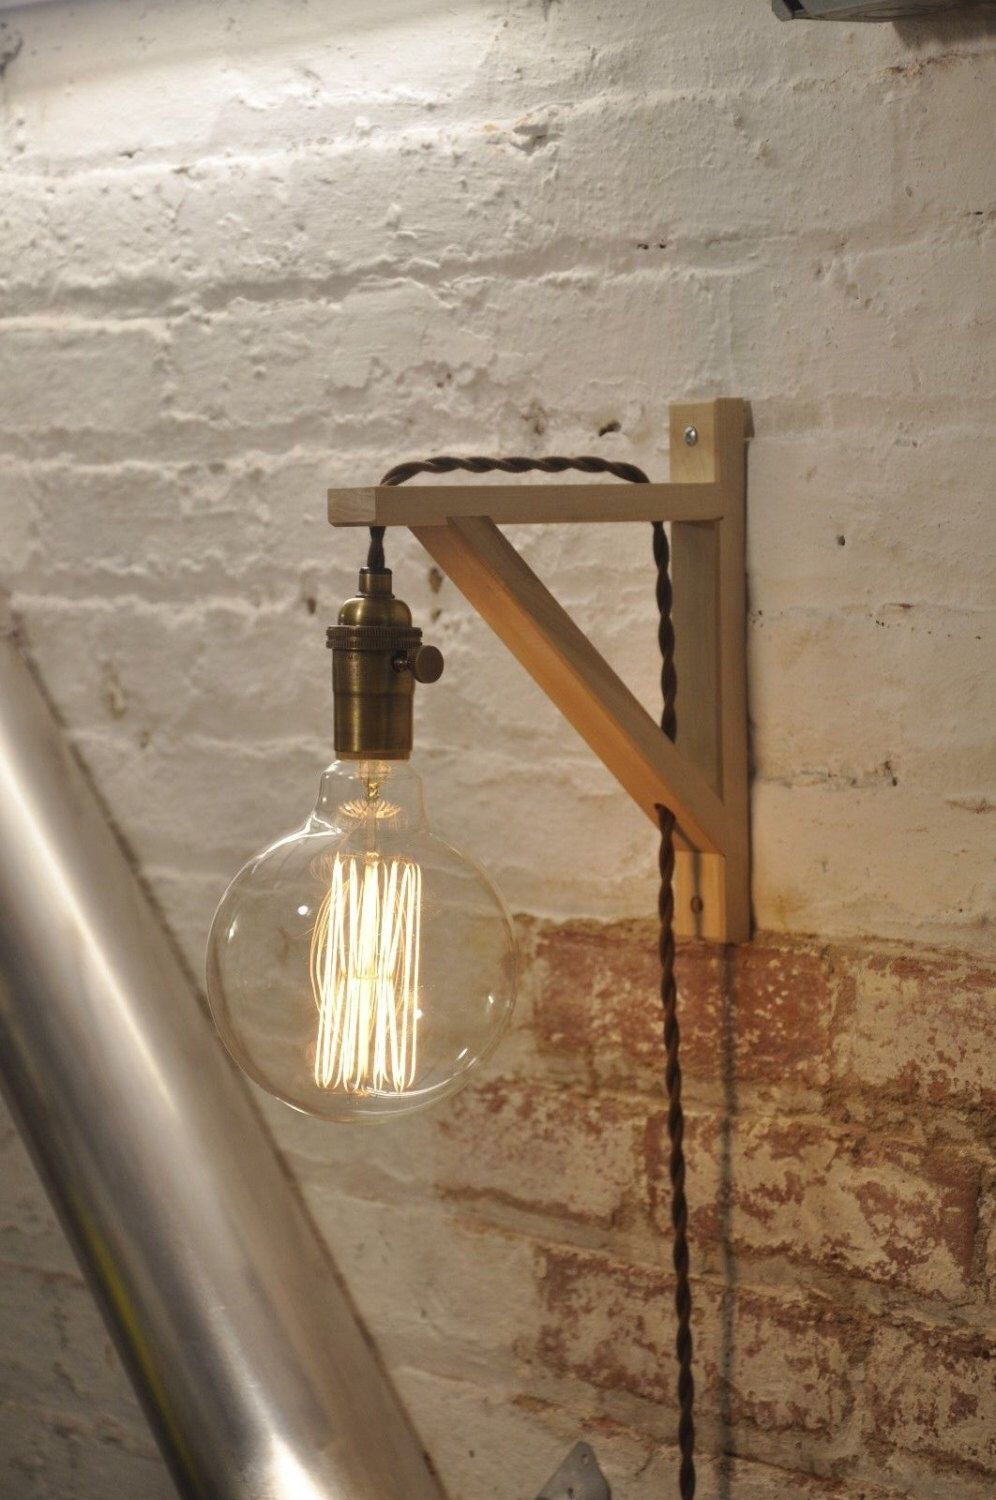 Wall Sconce Antique Brass Birch Wood Light Lamp Industrial Retro Vintage Solid By Wiresnjars On Etsy Http With Images Plug In Wall Lights Plug In Wall Lamp Rustic Lighting